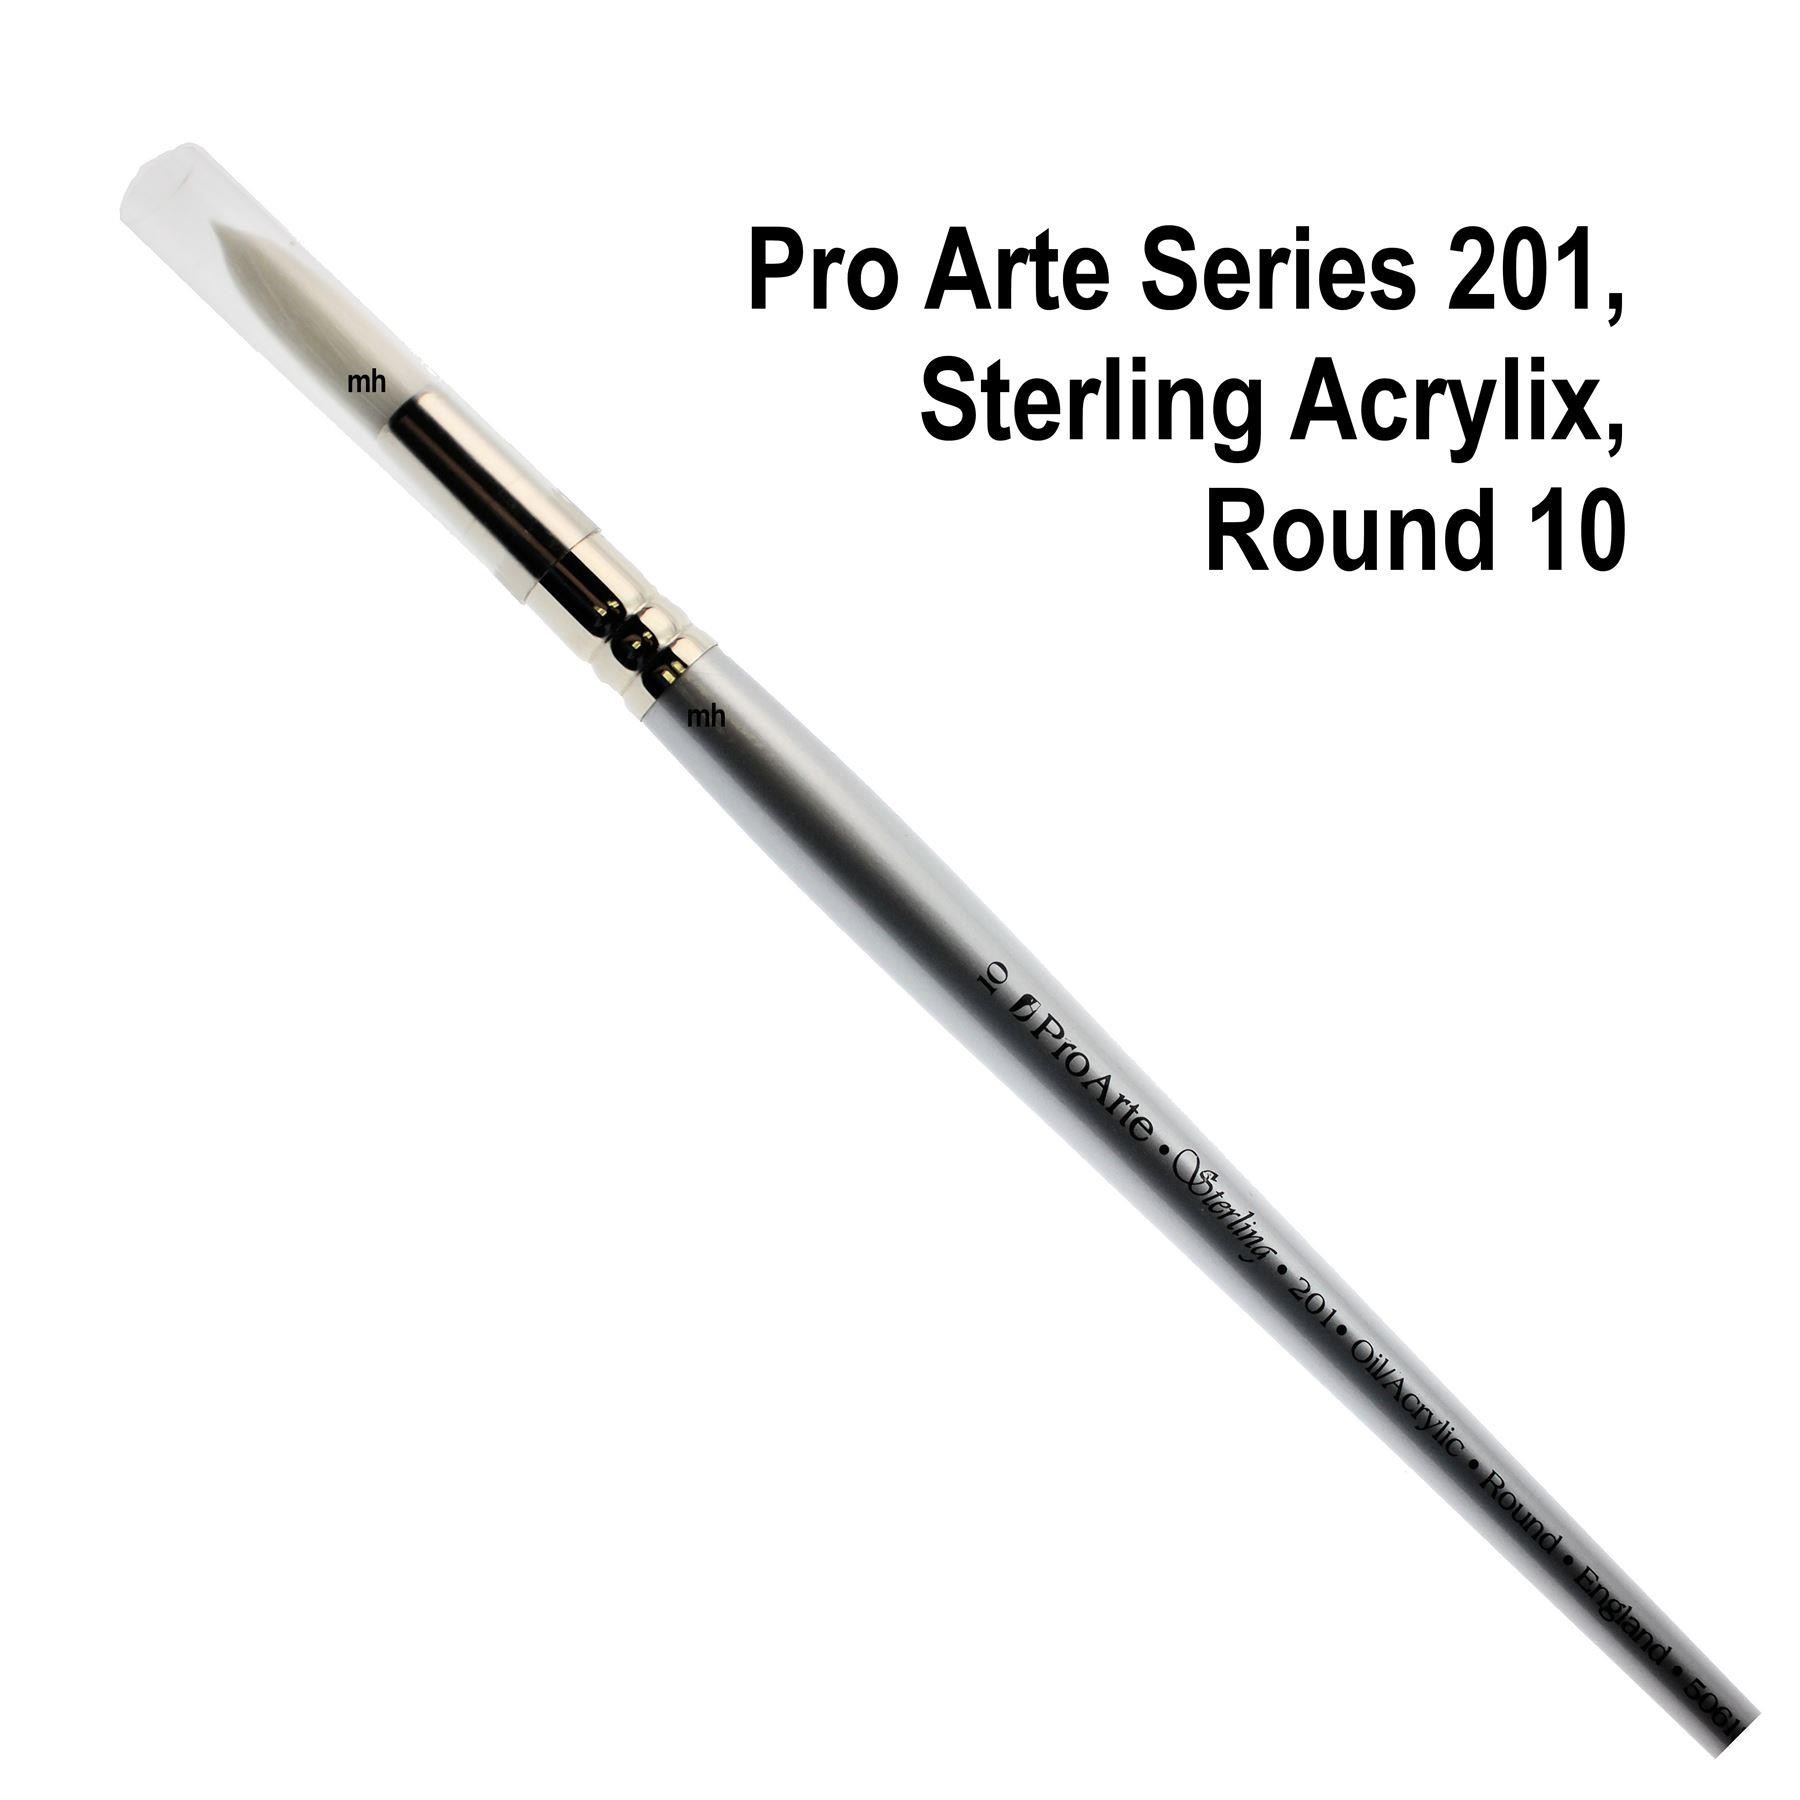 Pro Arte Series 201, Sterling Acrylix Brushes, Round Brush - Assorted Sizes